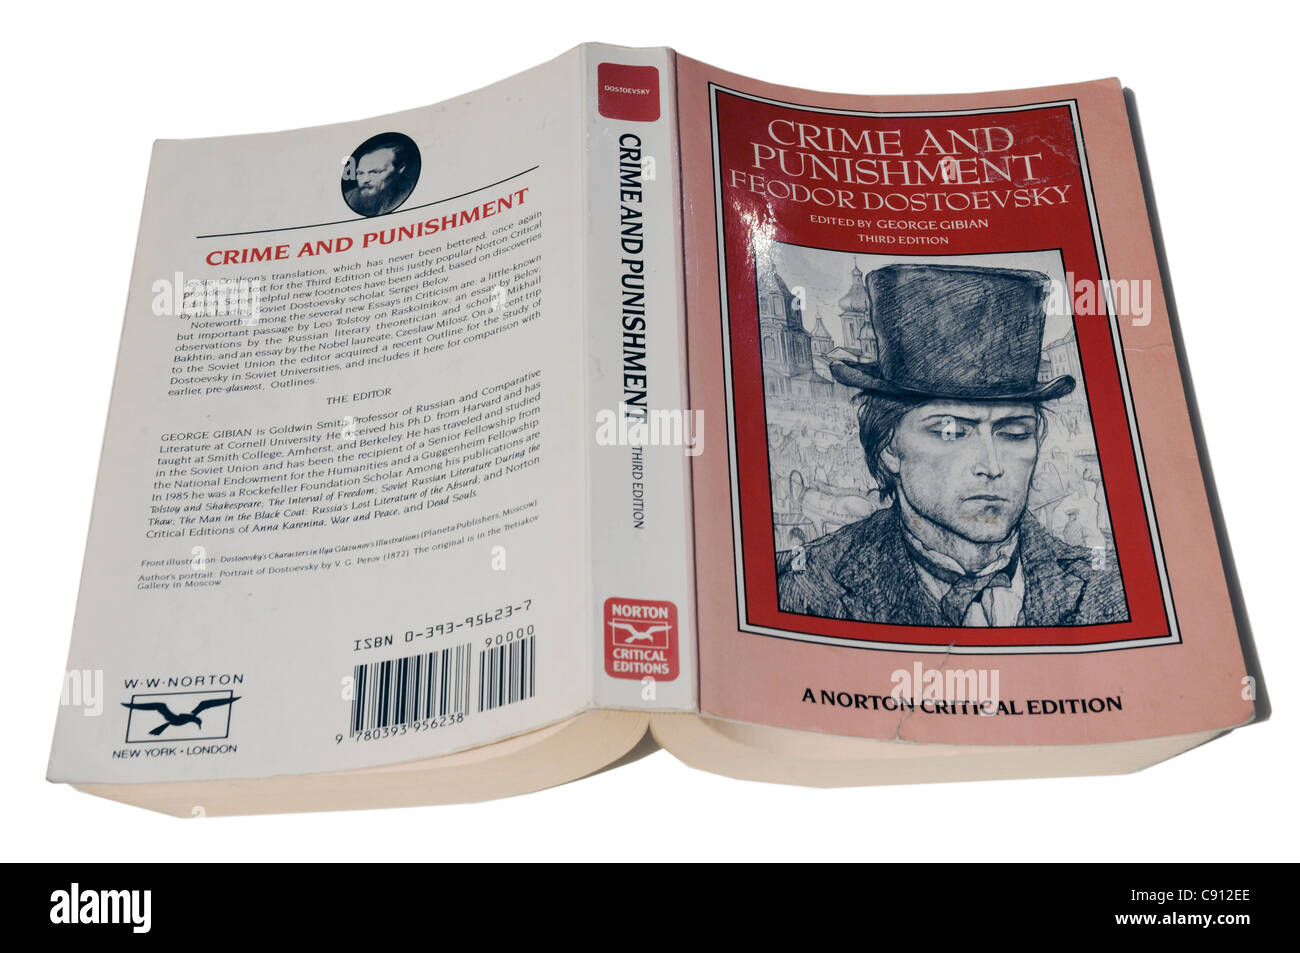 Crime and Punishment by Feodor Dostoyevsky - Stock Image